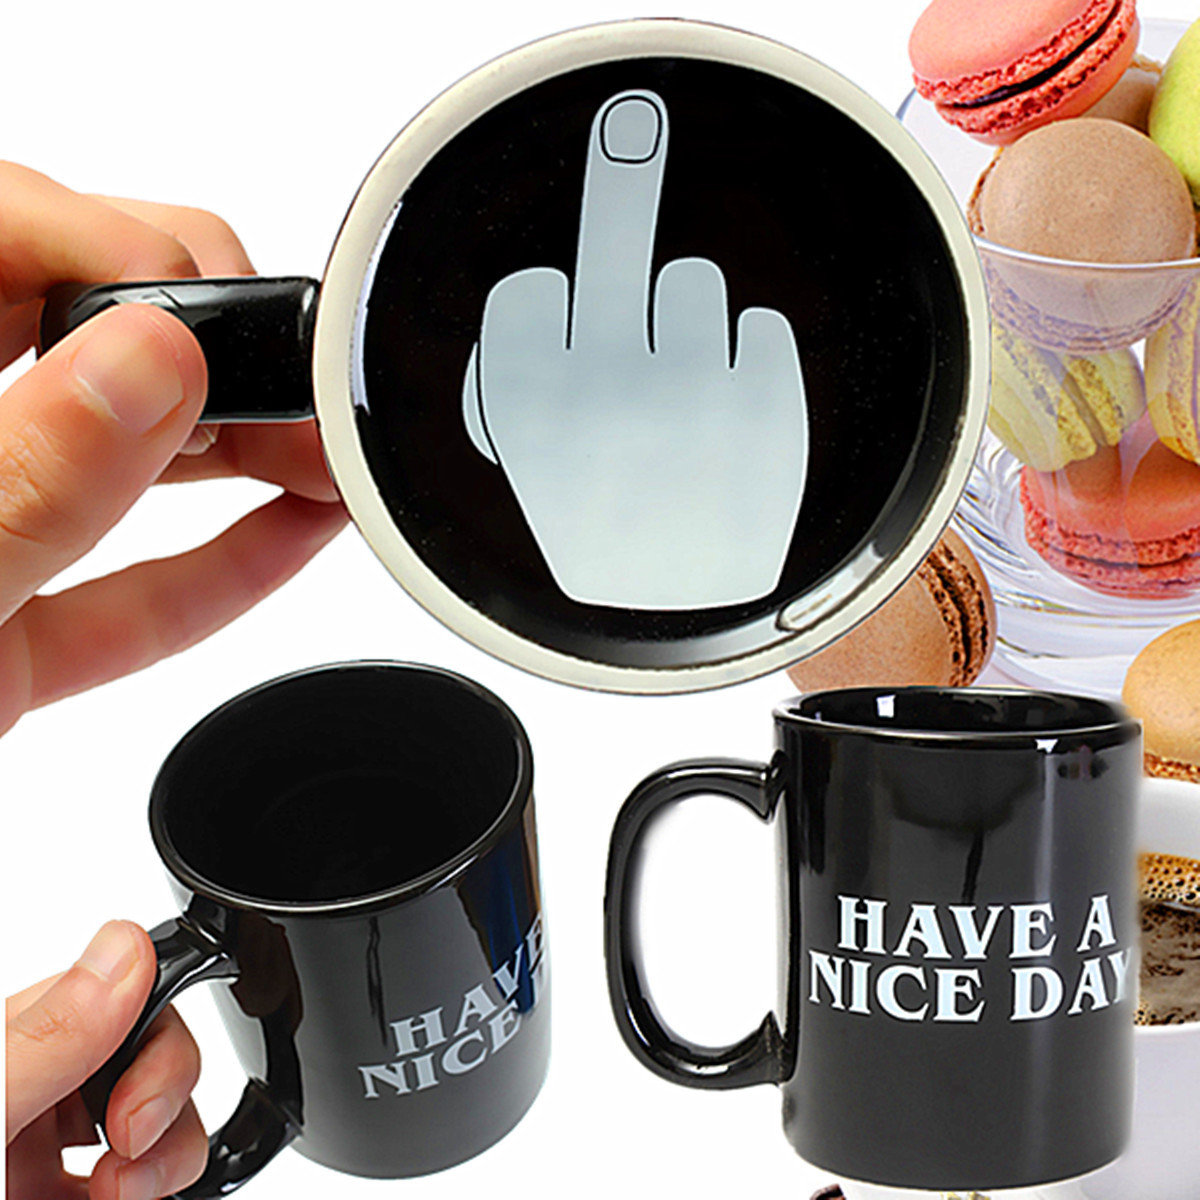 Where To Buy Nice Coffee Mugs 10oz Novelty Ceramic Middle Finger Coffee Cups Personality Office Gifts Have A Nice Day Mug